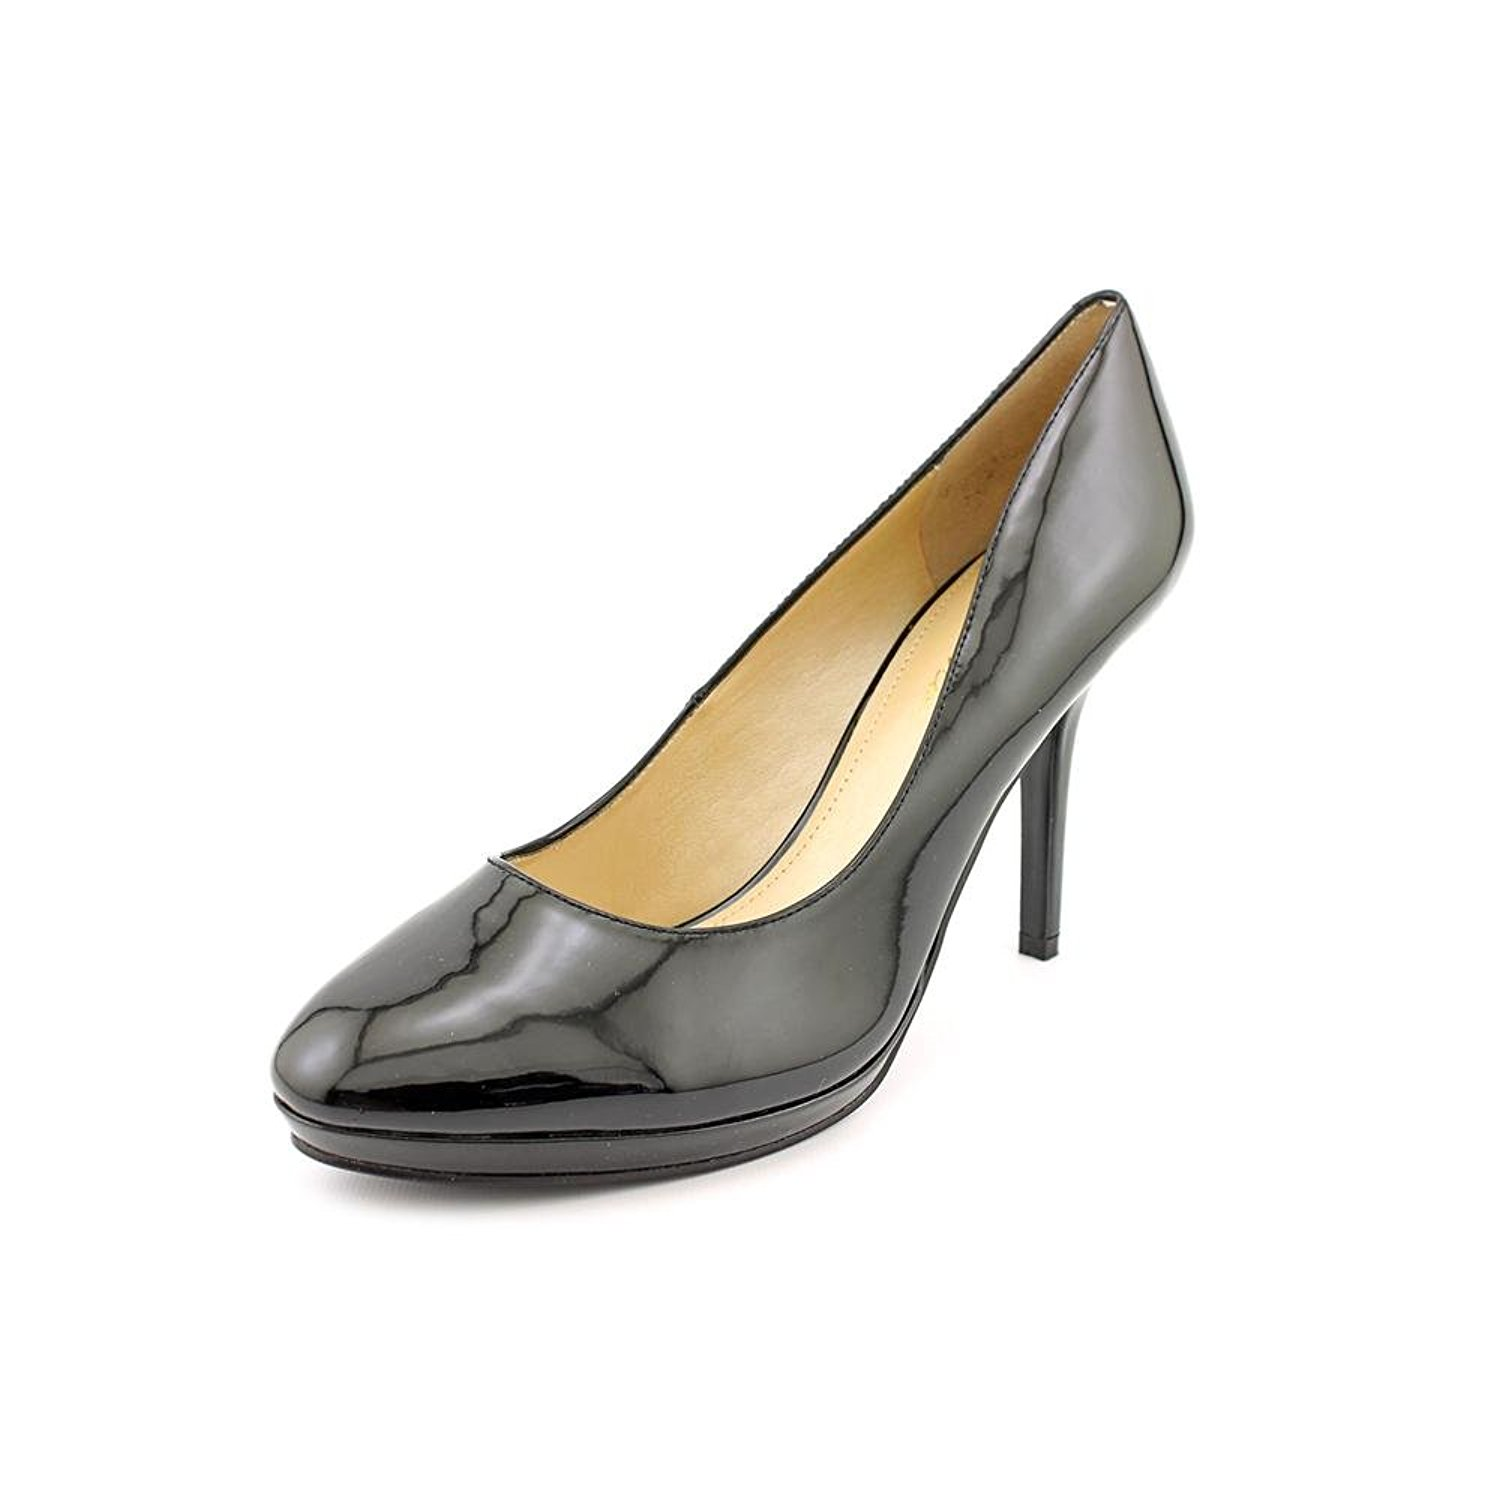 Marc Fisher Womens Magola5 Closed Toe Classic Pumps Black Size 9.0